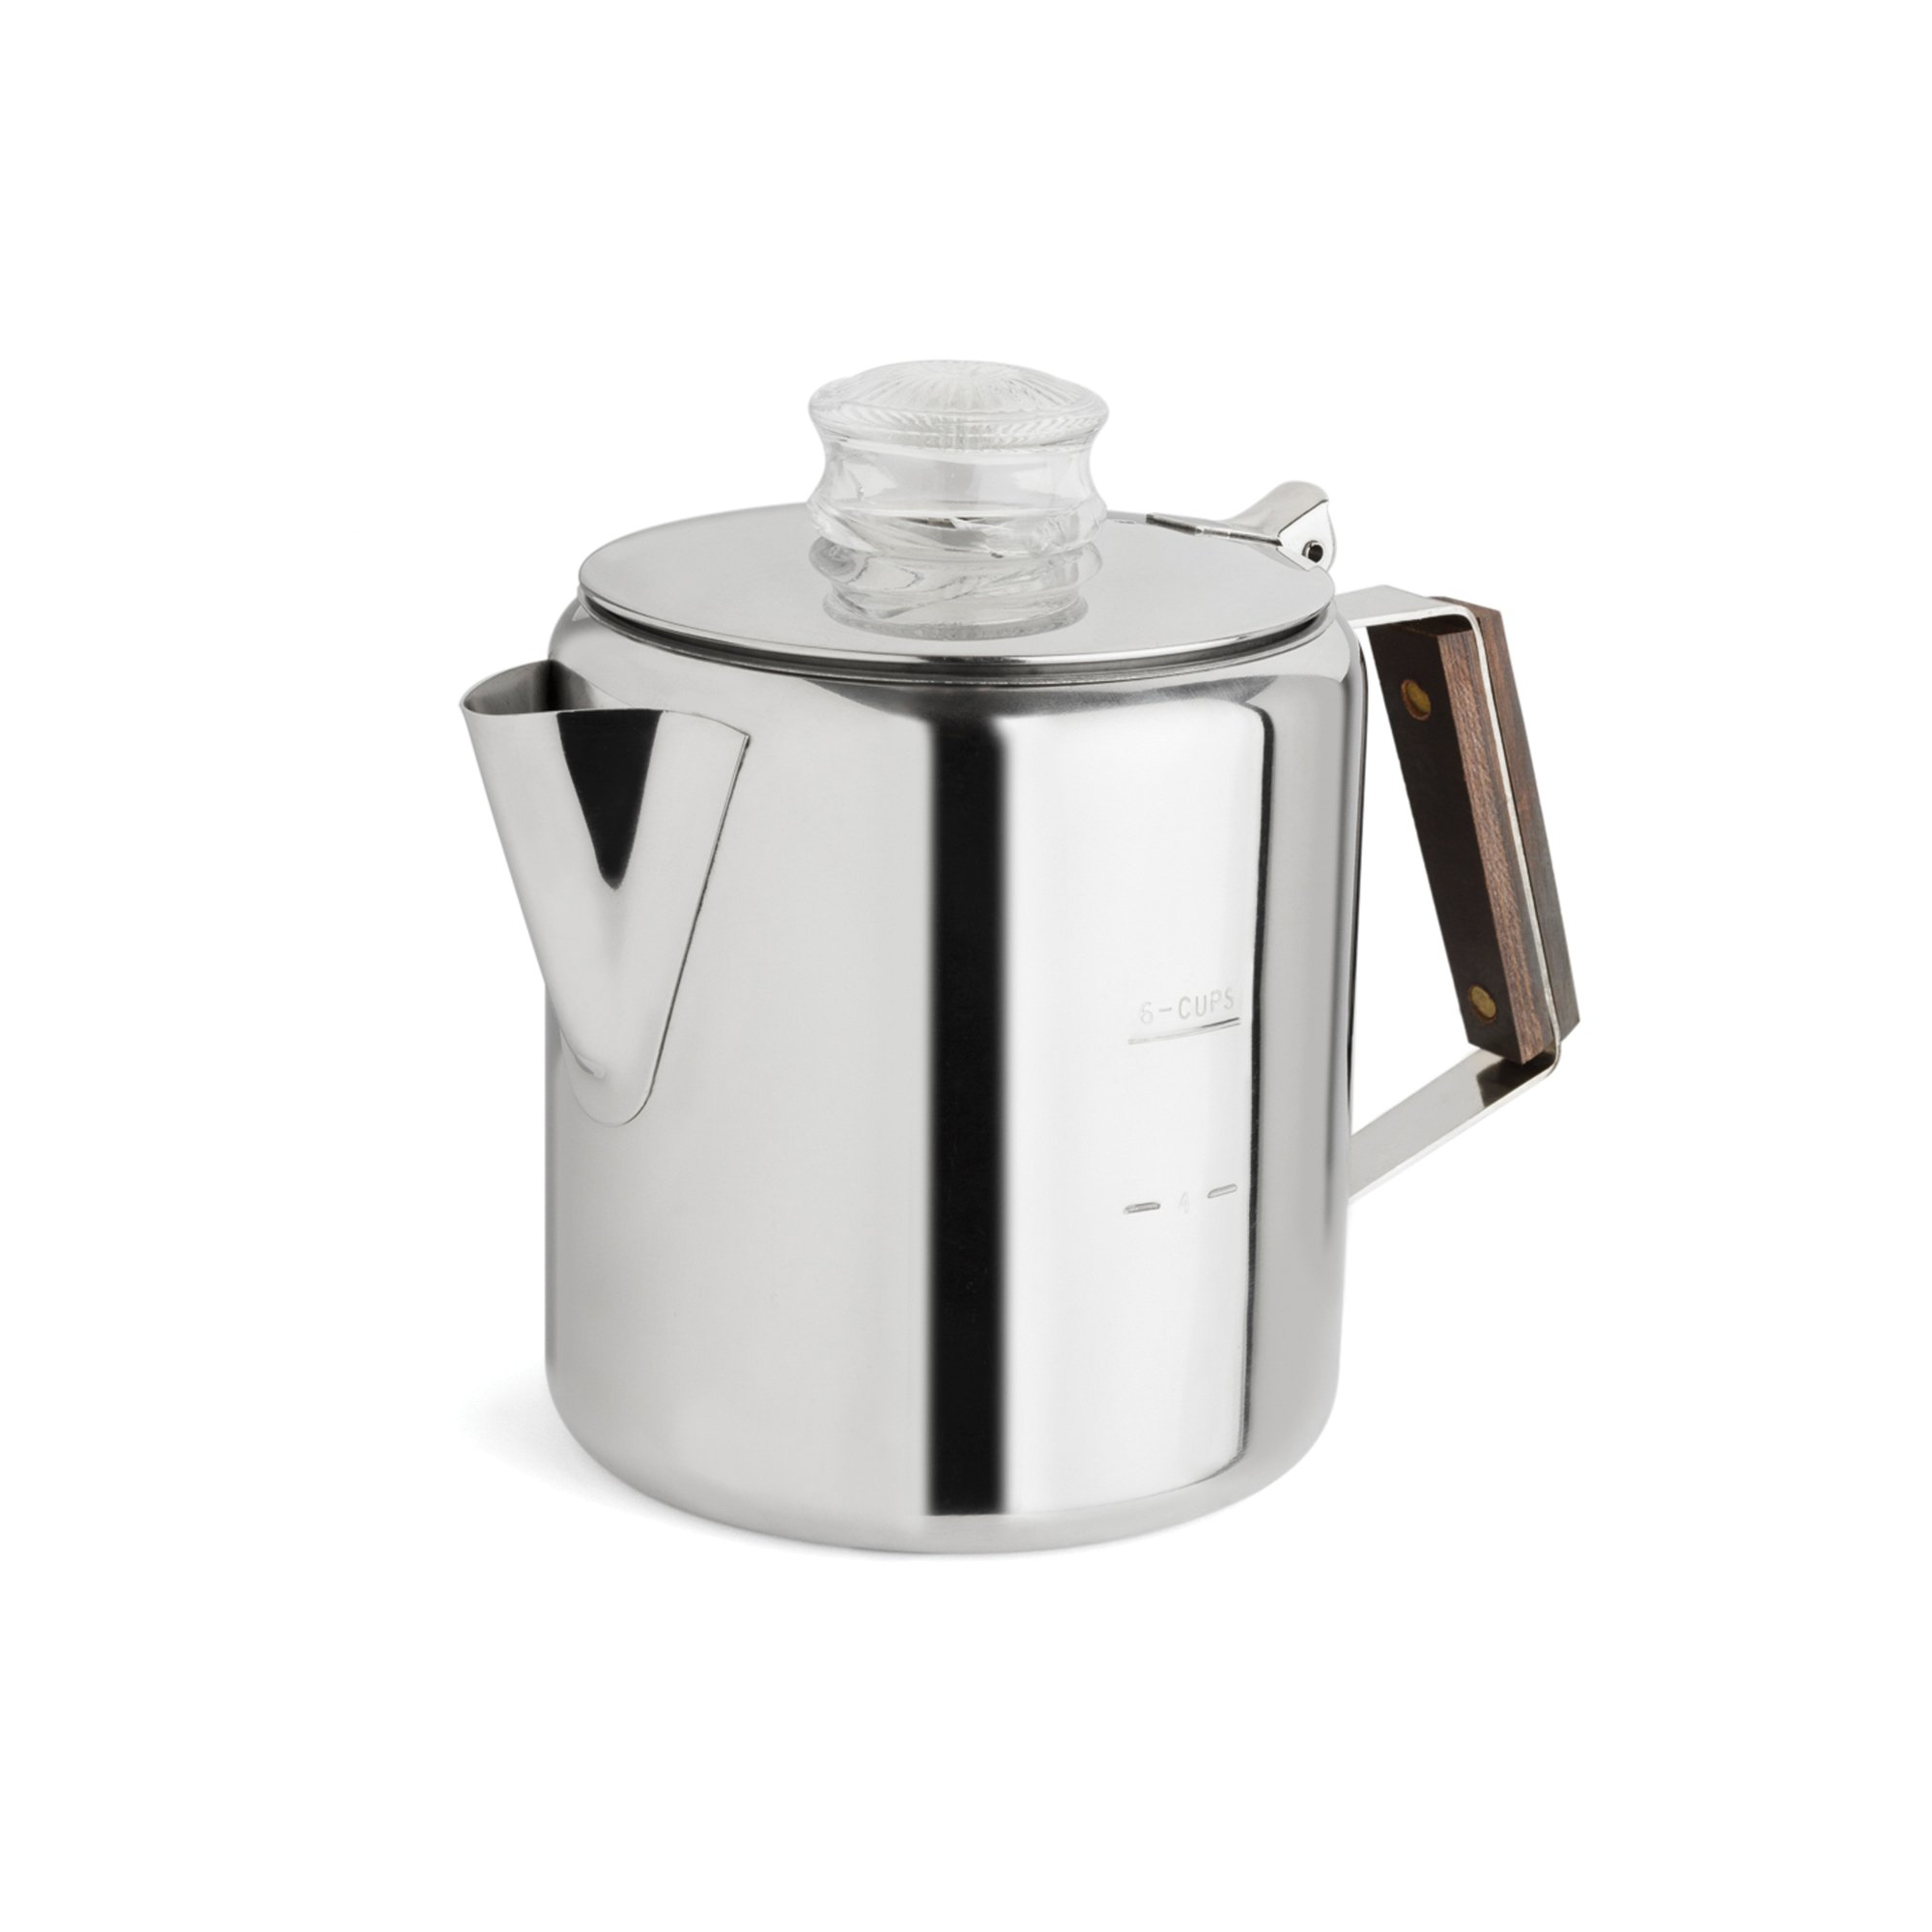 TOPS 55703 Rapid Brew Stainless Steel Stovetop Coffee Percolator, 6-Cup, Metallic by Tops